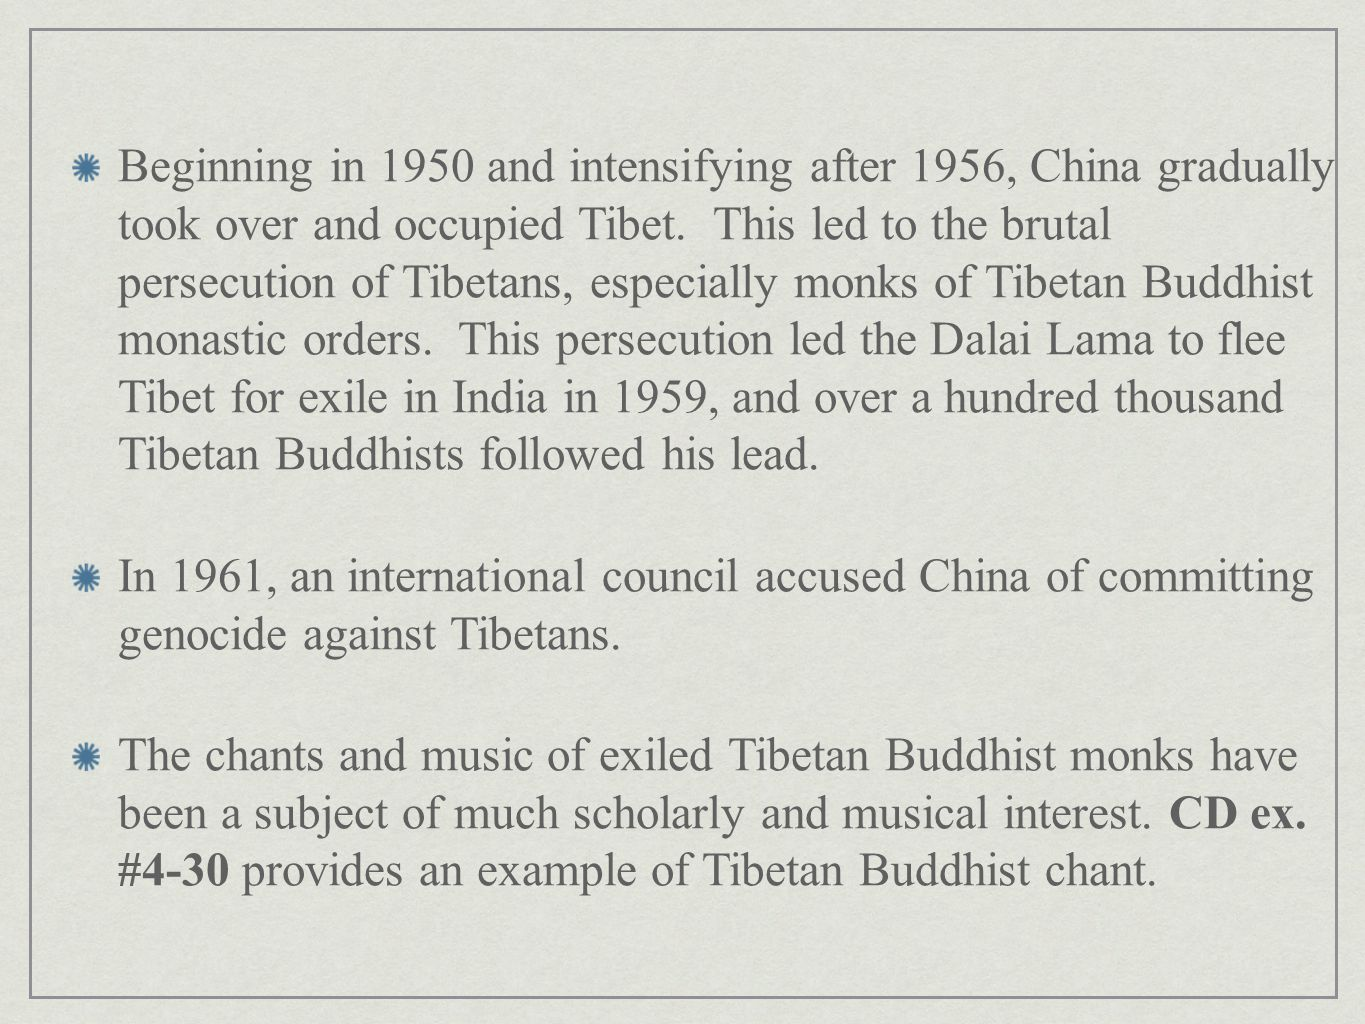 Beginning in 1950 and intensifying after 1956, China gradually took over and occupied Tibet. This led to the brutal persecution of Tibetans, especially monks of Tibetan Buddhist monastic orders. This persecution led the Dalai Lama to flee Tibet for exile in India in 1959, and over a hundred thousand Tibetan Buddhists followed his lead.